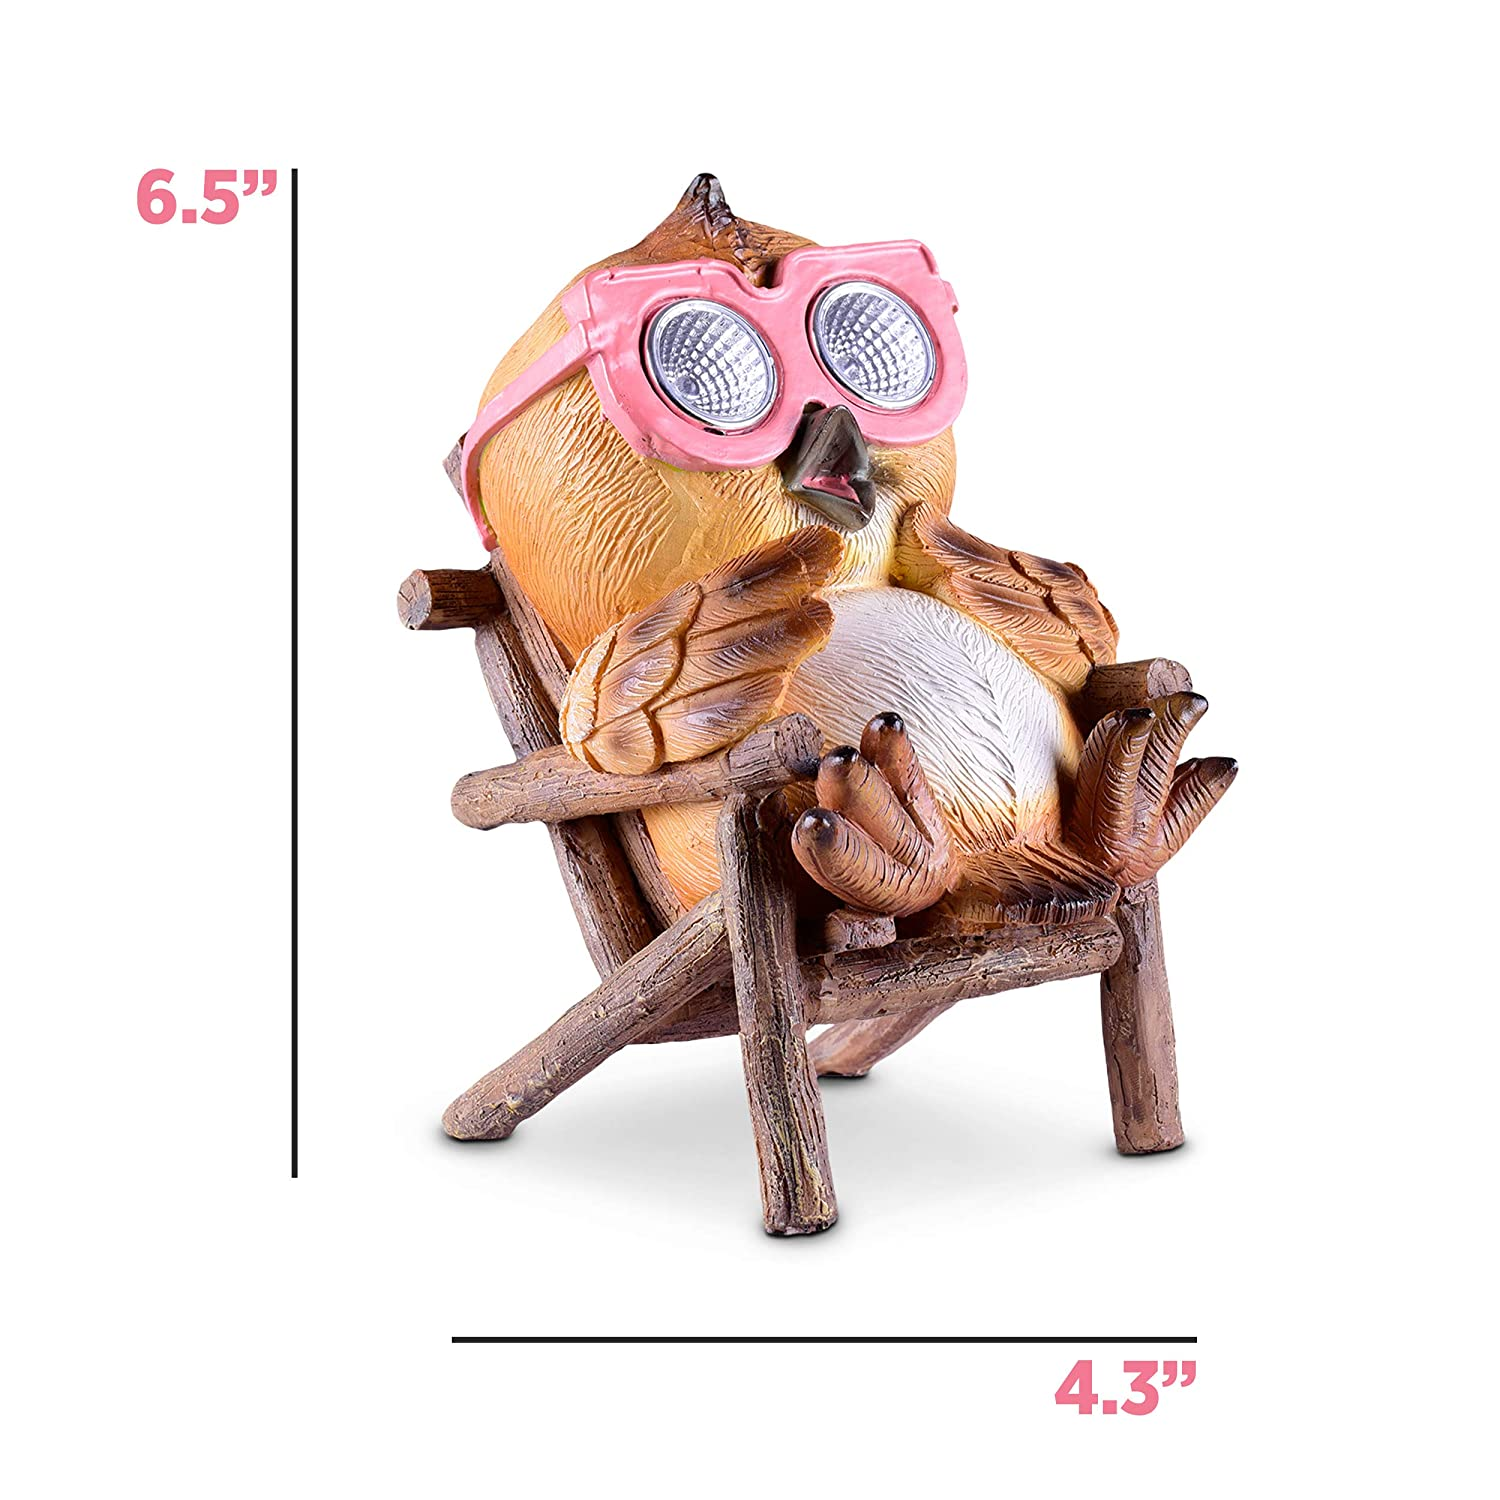 Outdoor Yard Lawn Decor LED Figure Light Up Decorative Statue Accents Patio or Deck Weather Resistant Brown - 1 Pack Owl Figurine Solar Garden Decorations Great Housewarming Gift Idea